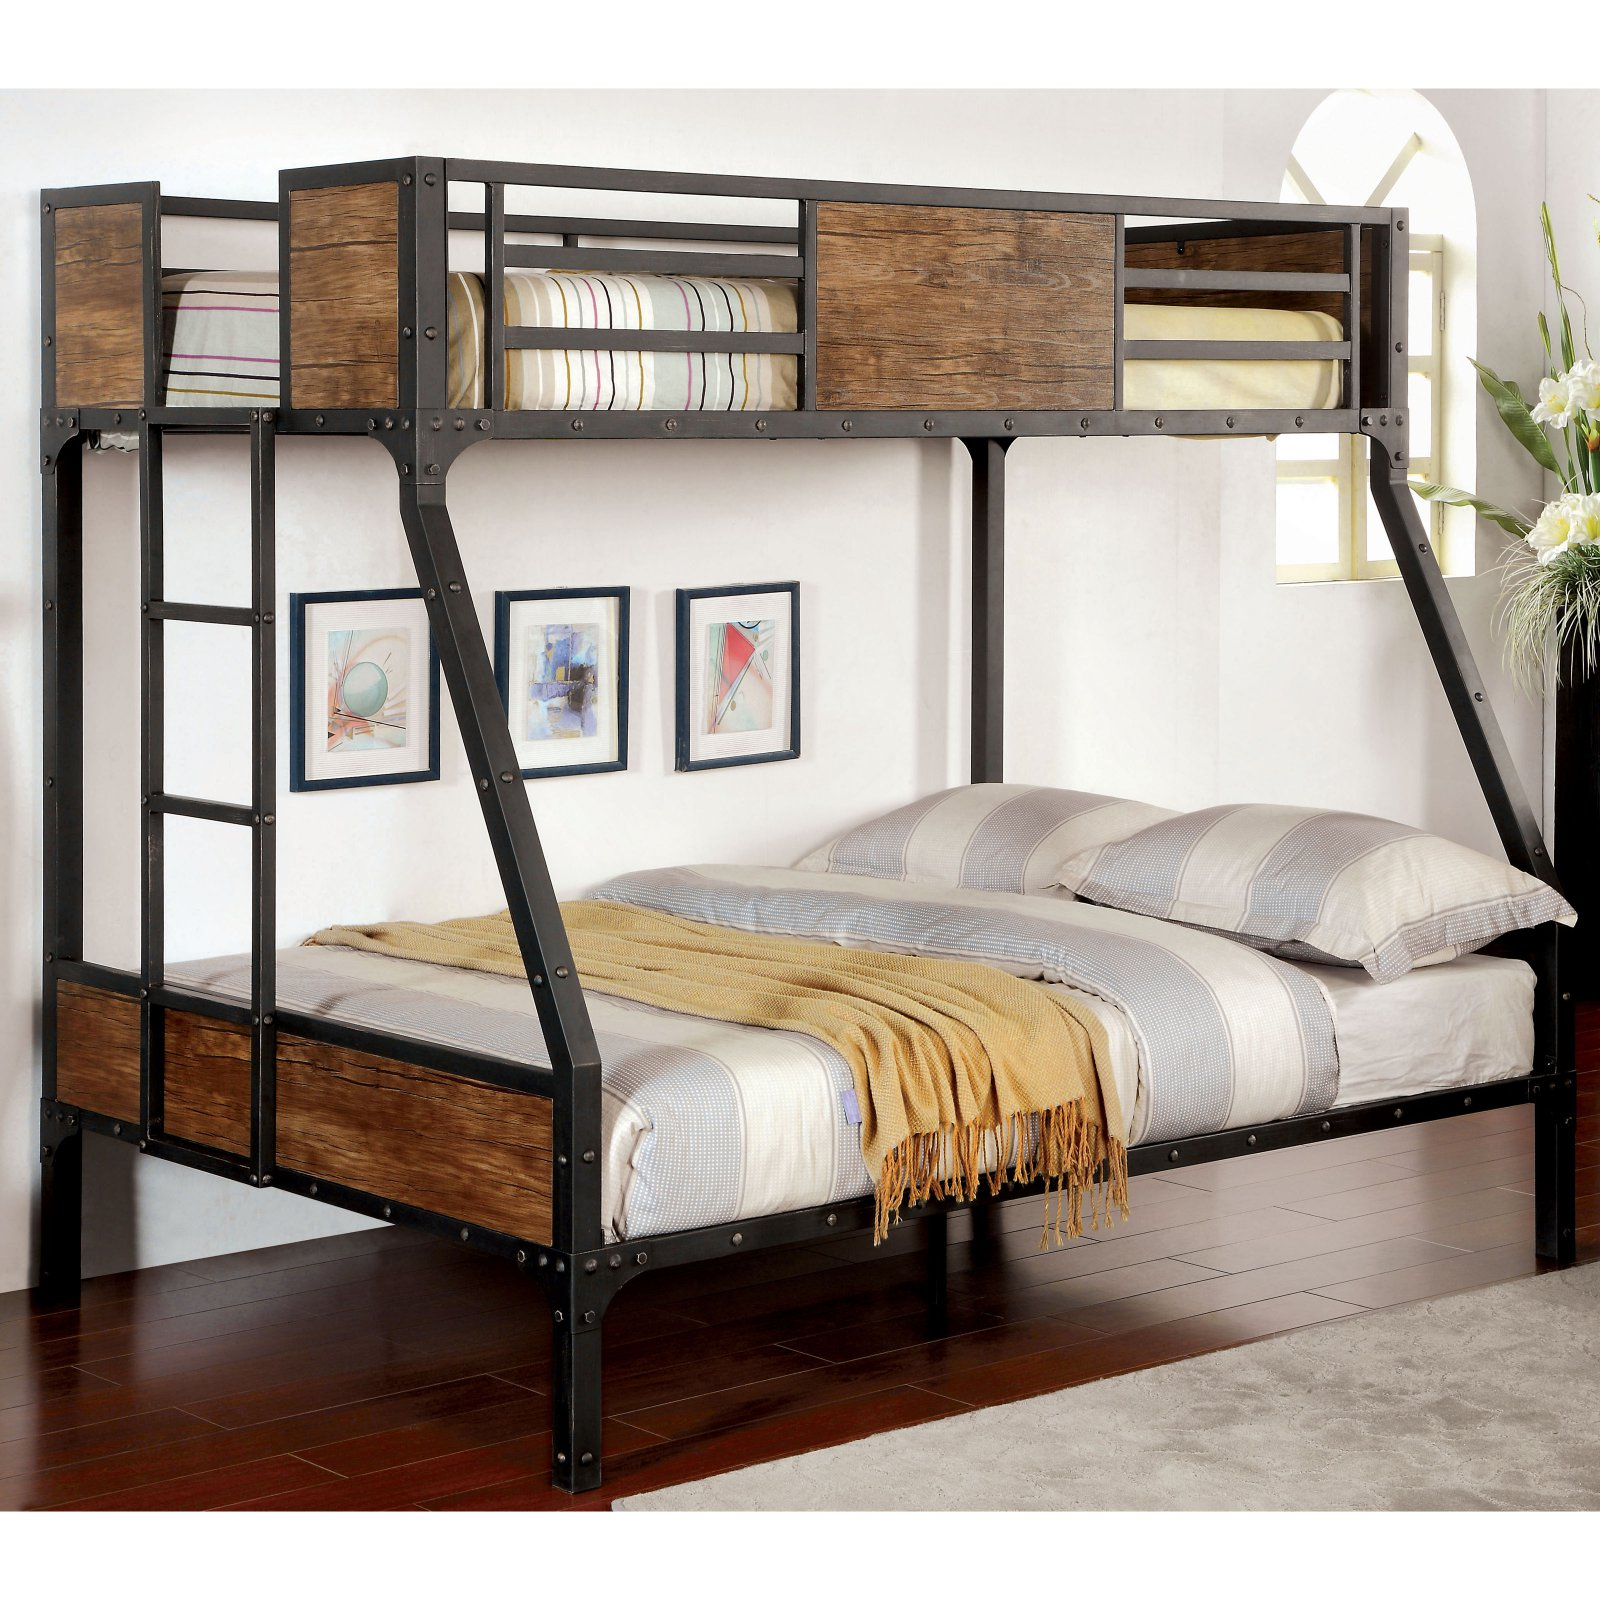 Furniture Of America Brighton Wood Panel Twin Over Full Bunk Bed